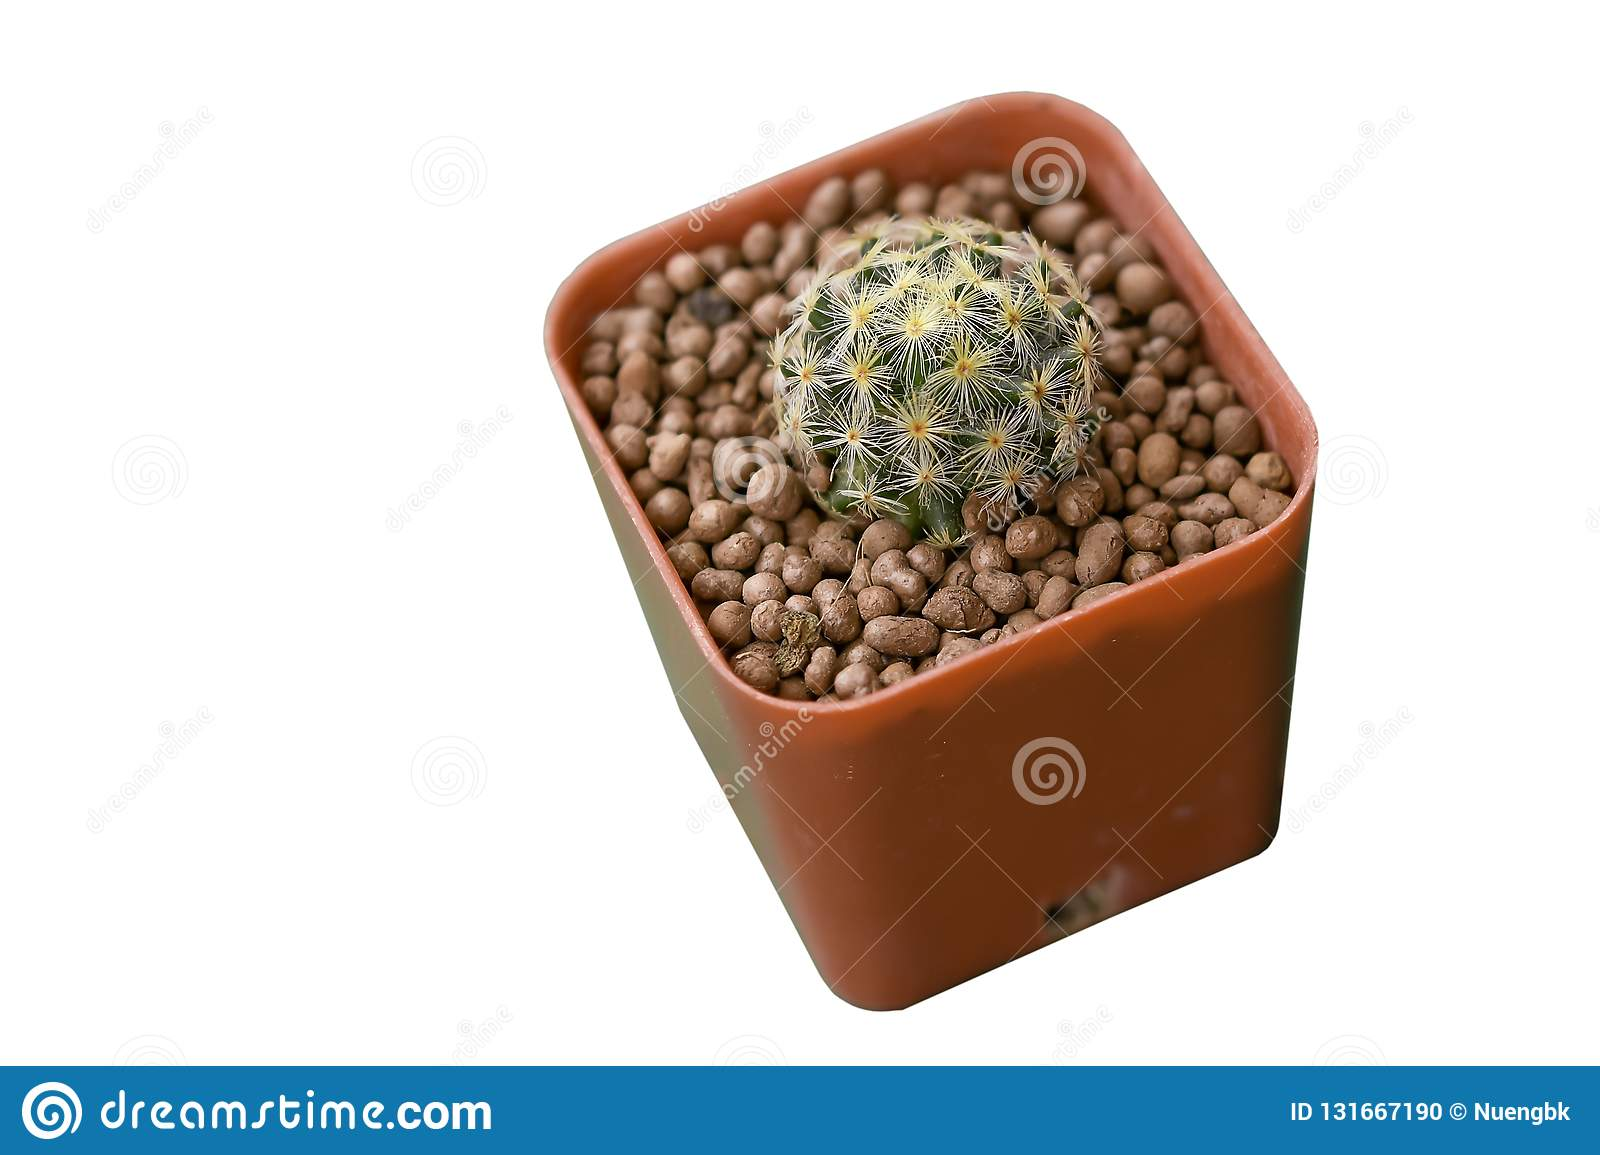 Cactus Grown as ornamental plants Beautiful oon a white background